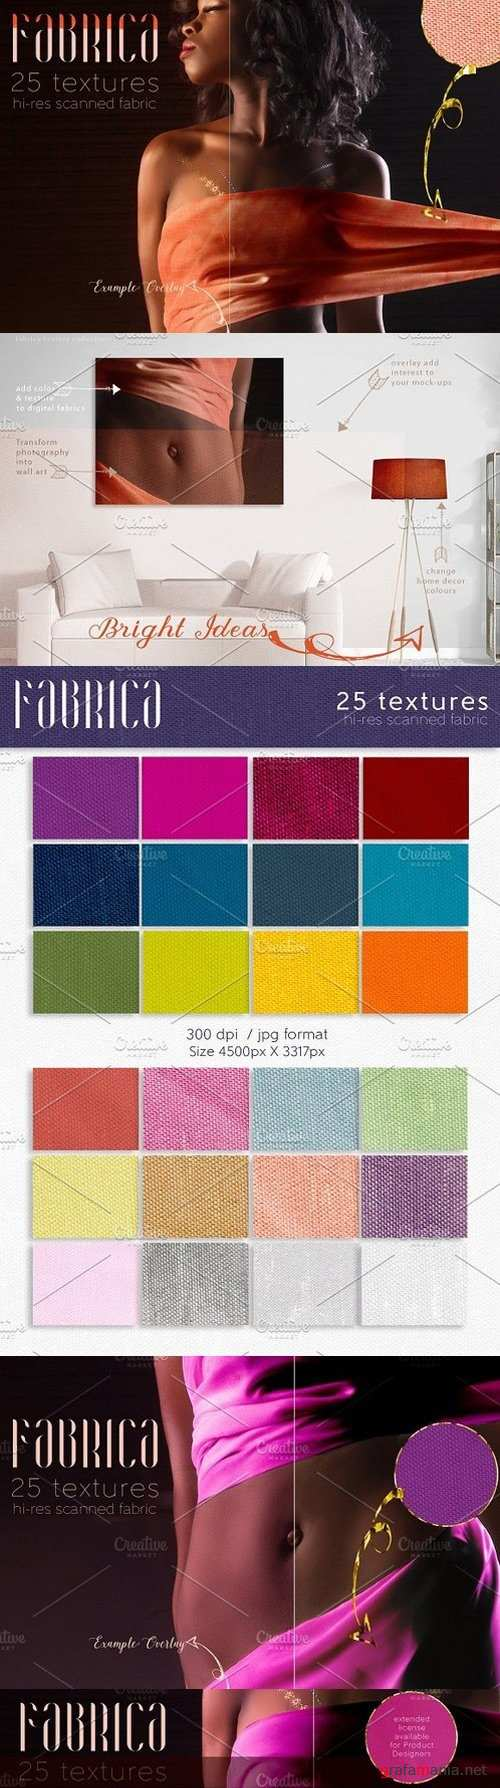 Fabrica Texture Overlays Collection 1495129